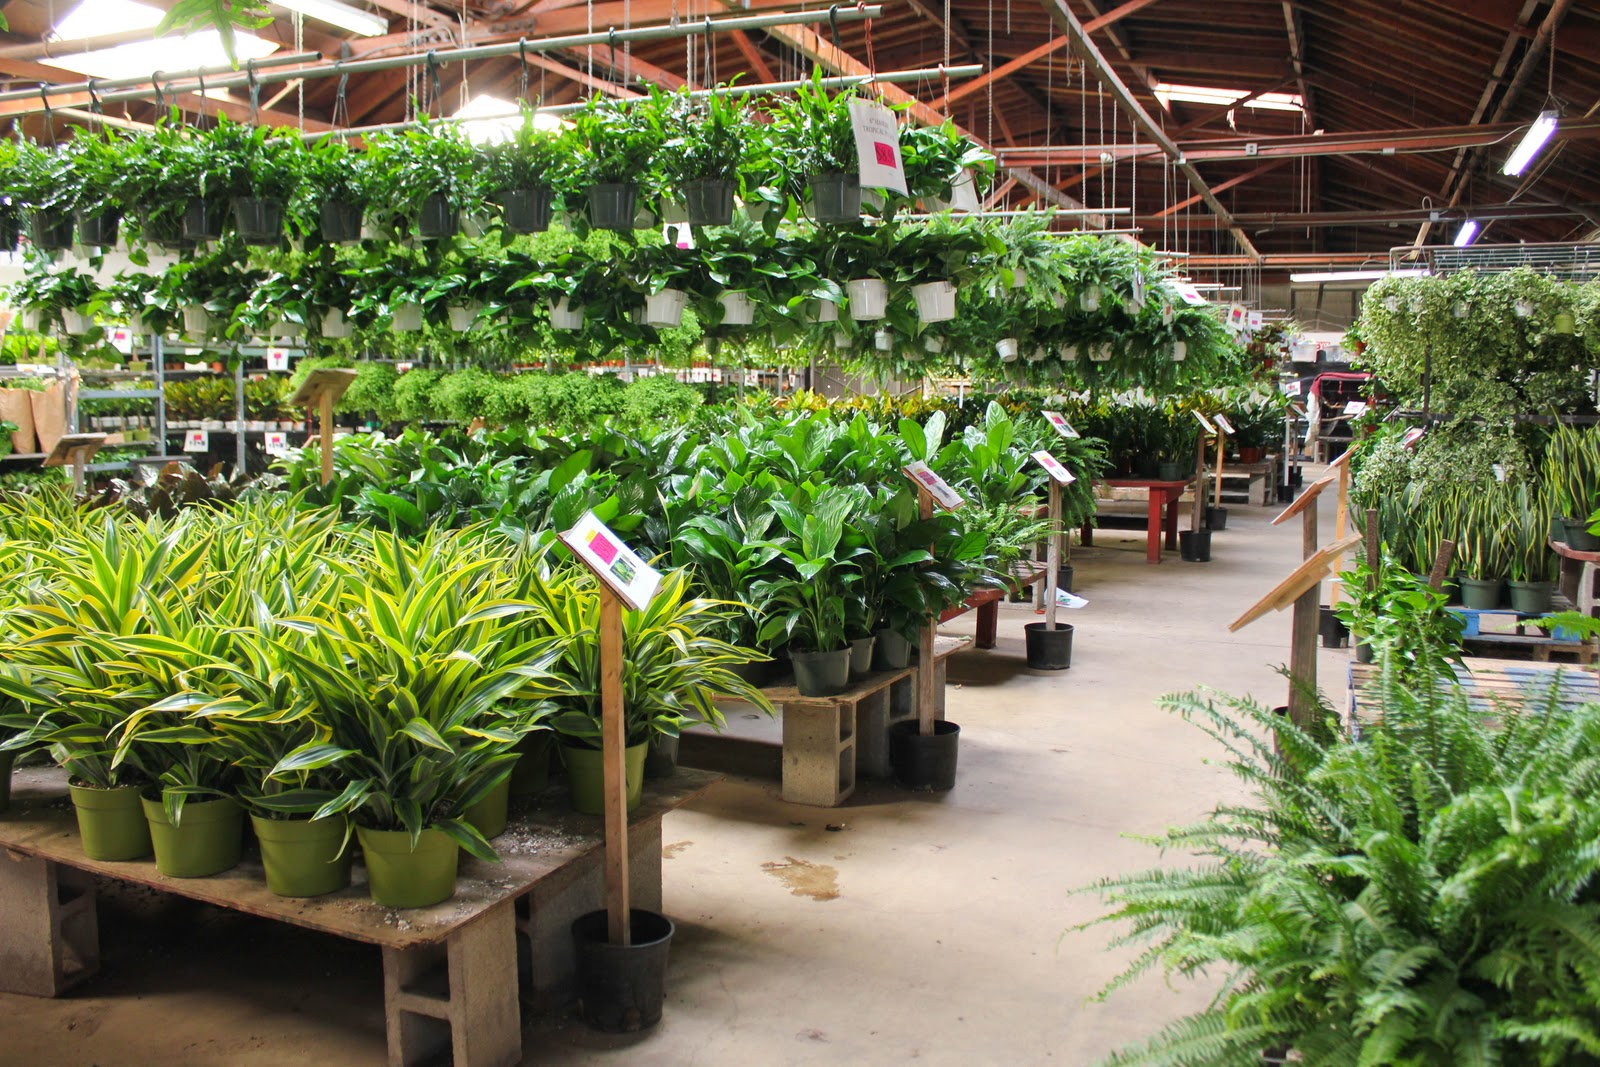 It Was Shocking Like The Costco Of Indoor Plants Some Major Nitrogen Going On In Here But Selection Amazing And Prices